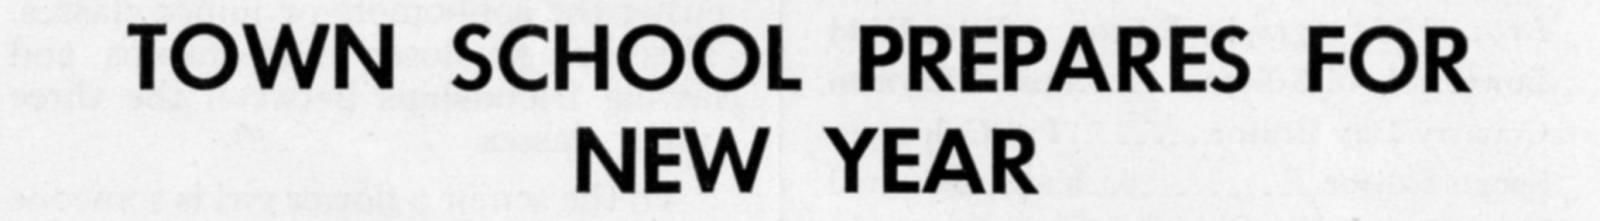 """Town School Prepares For New Year"" from The Match, Vol. XIV, No. 1, November 1958"